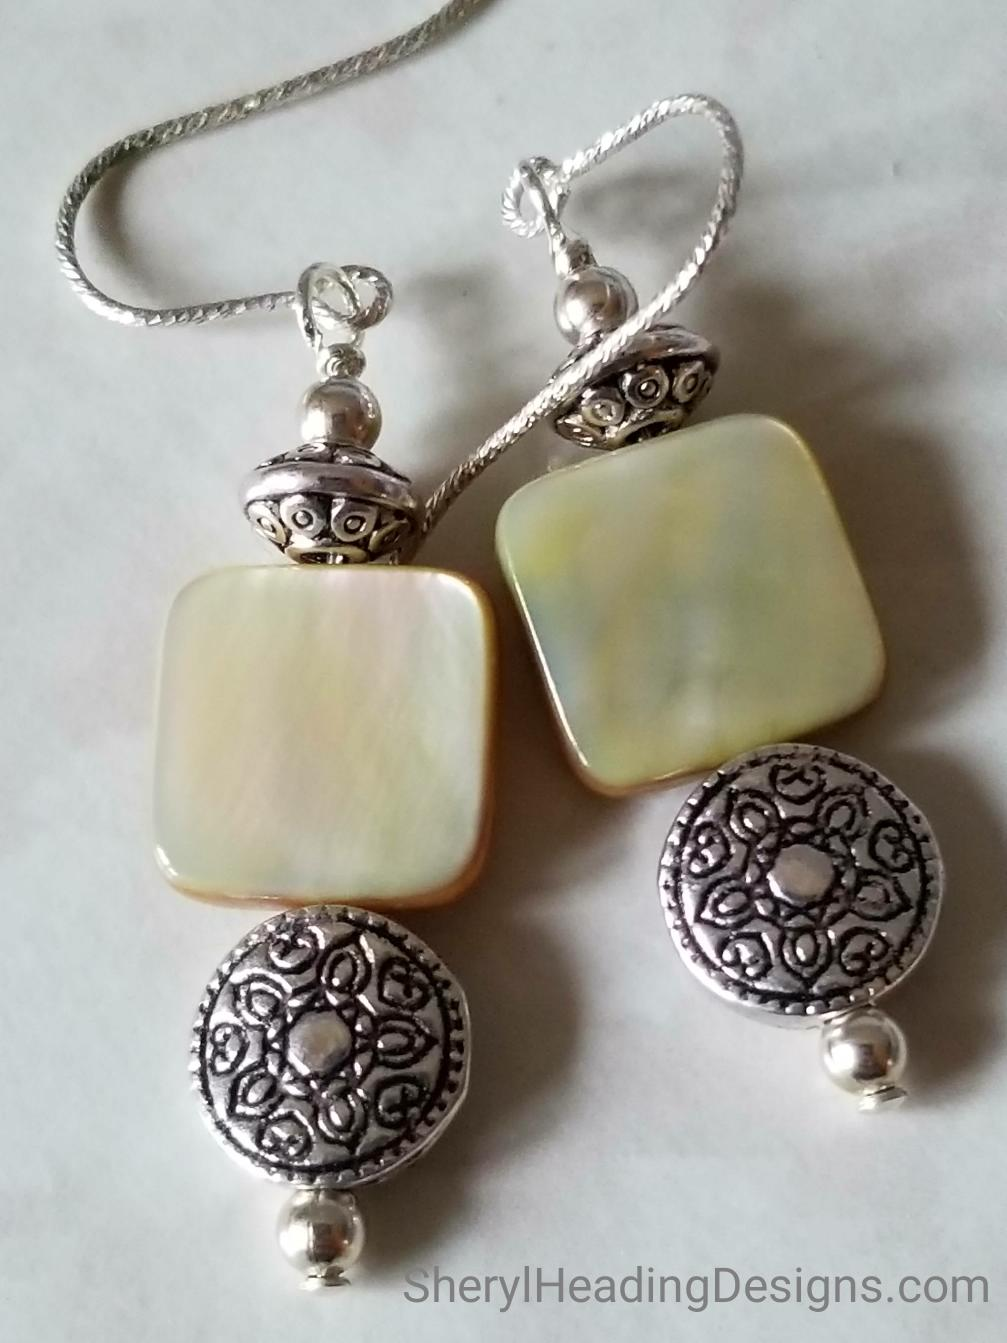 Simple Silver Pleasures - Sheryl Heading Designs